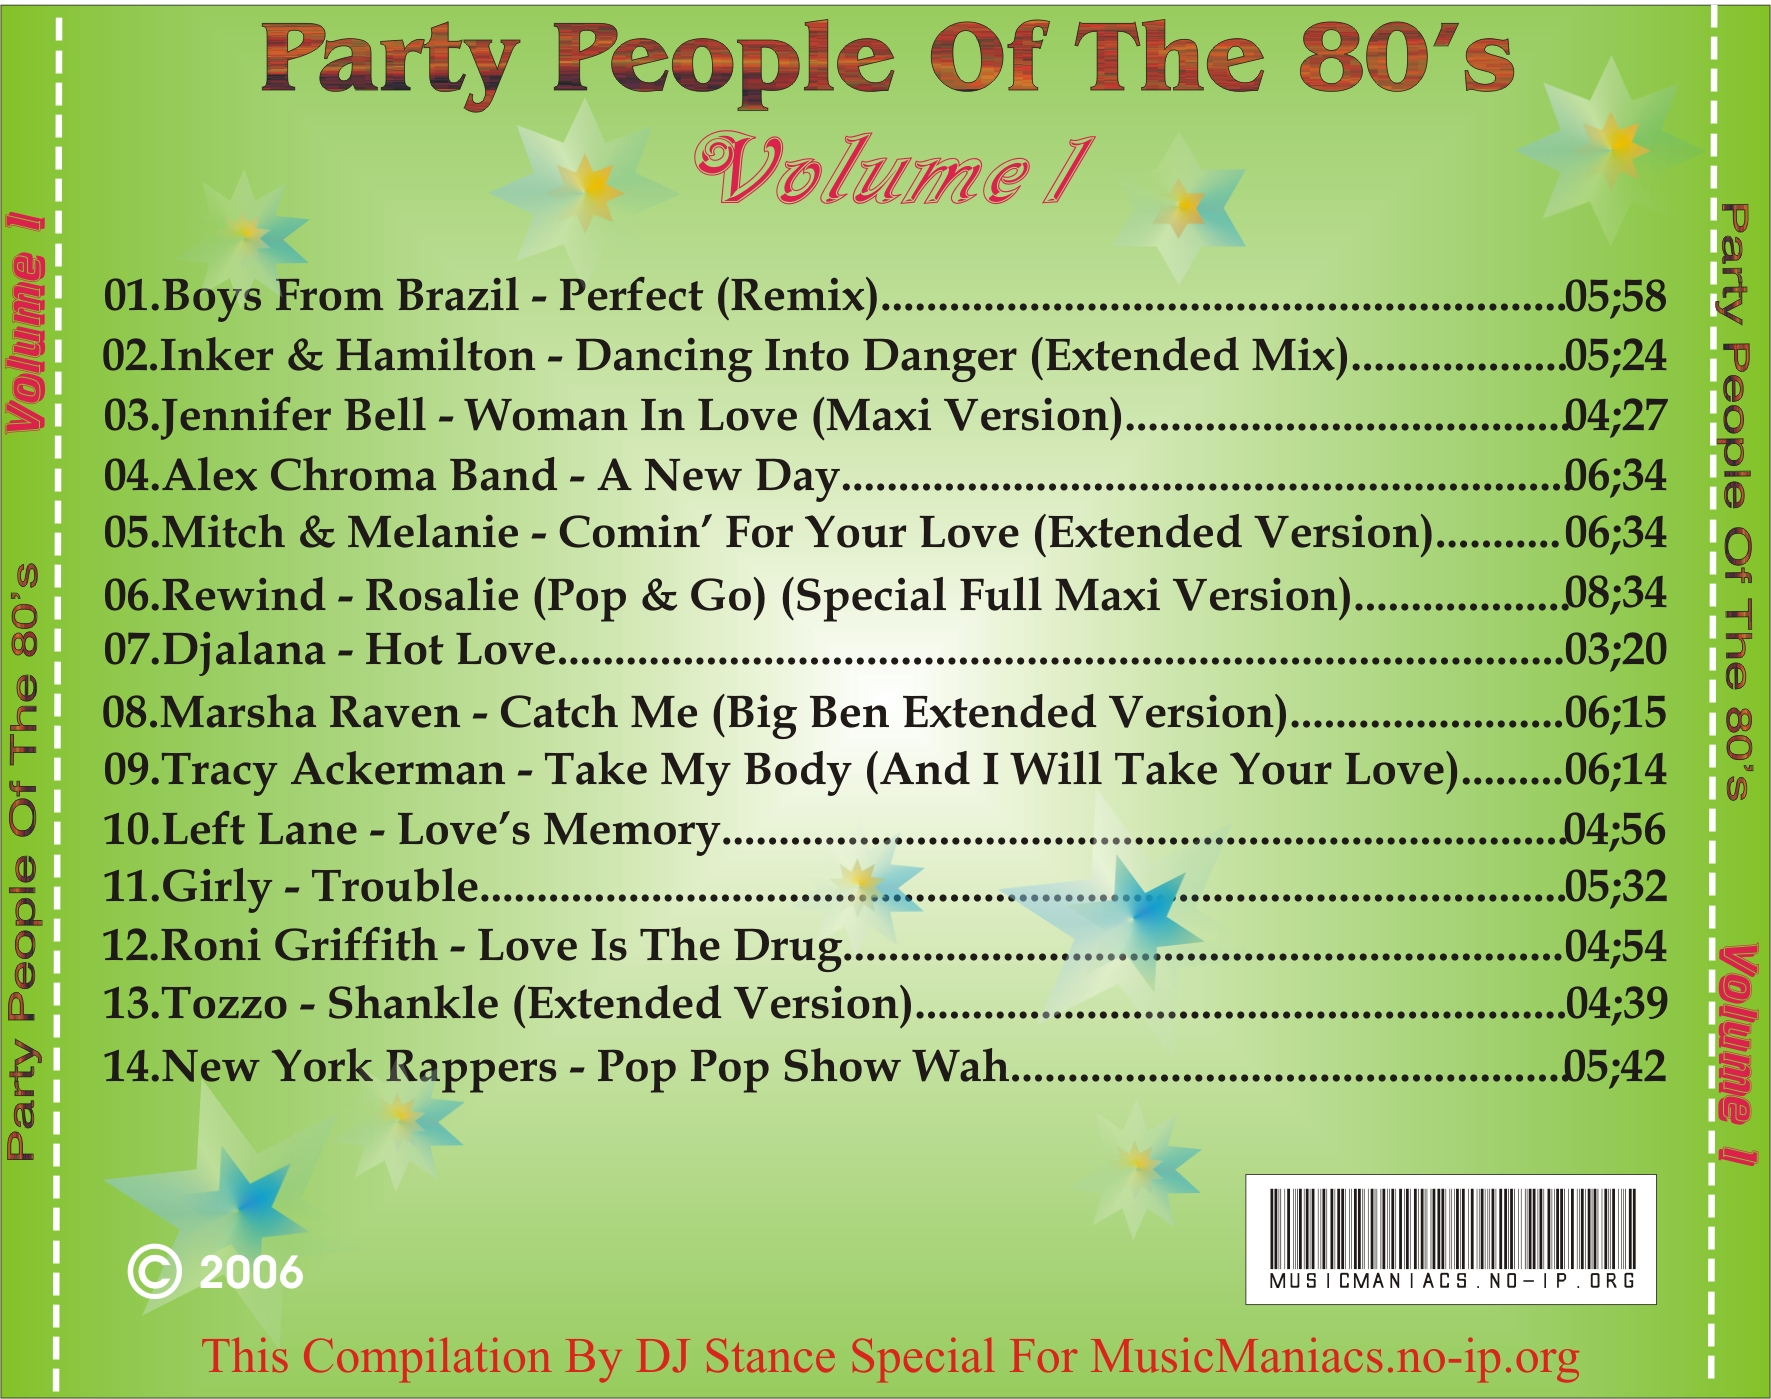 Party People Of The 80's Vol.01